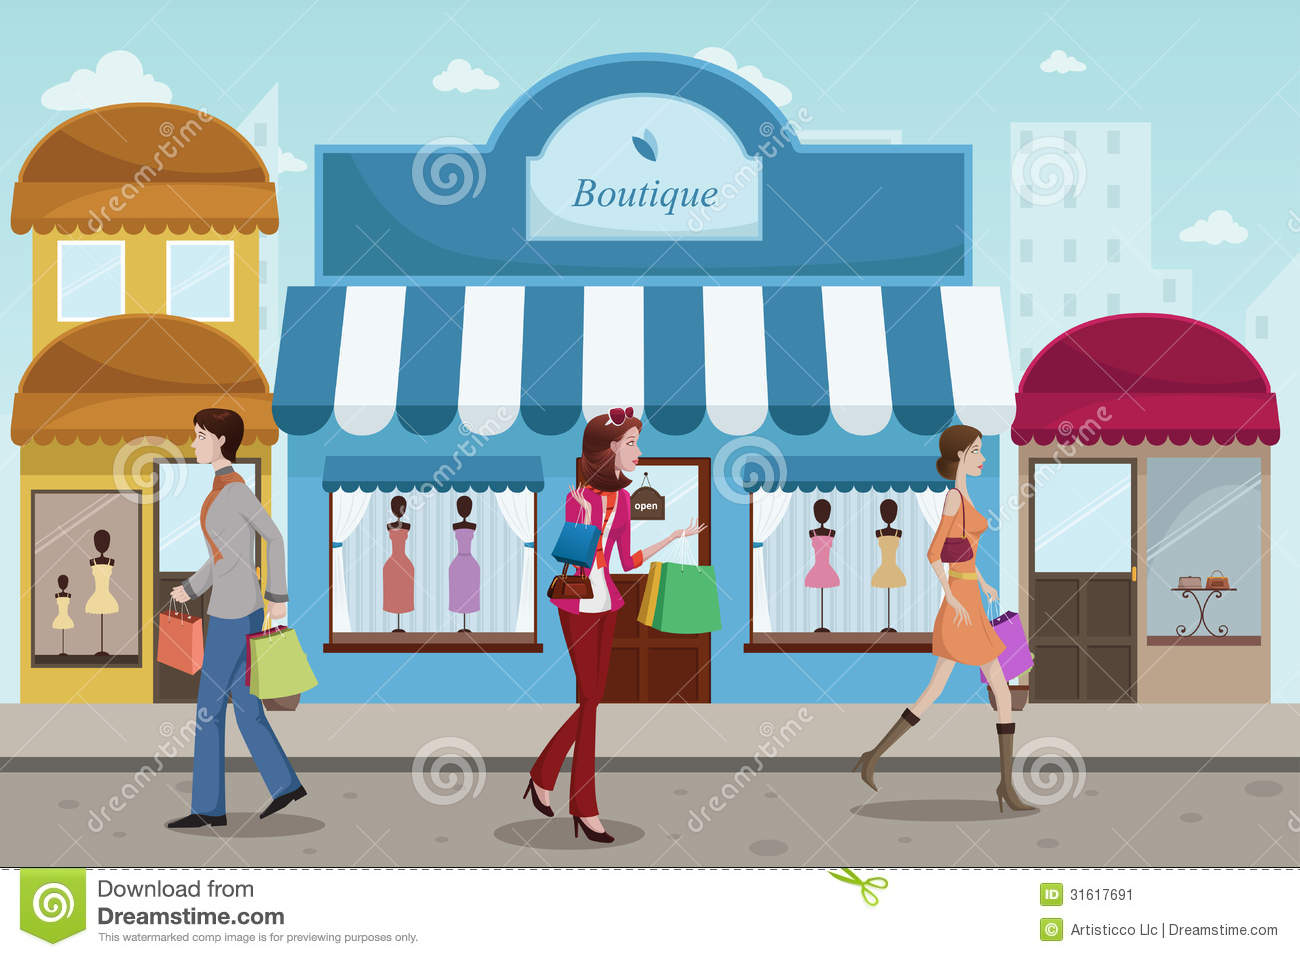 People shopping in an outdoor mall with french boutique for Centre boutique